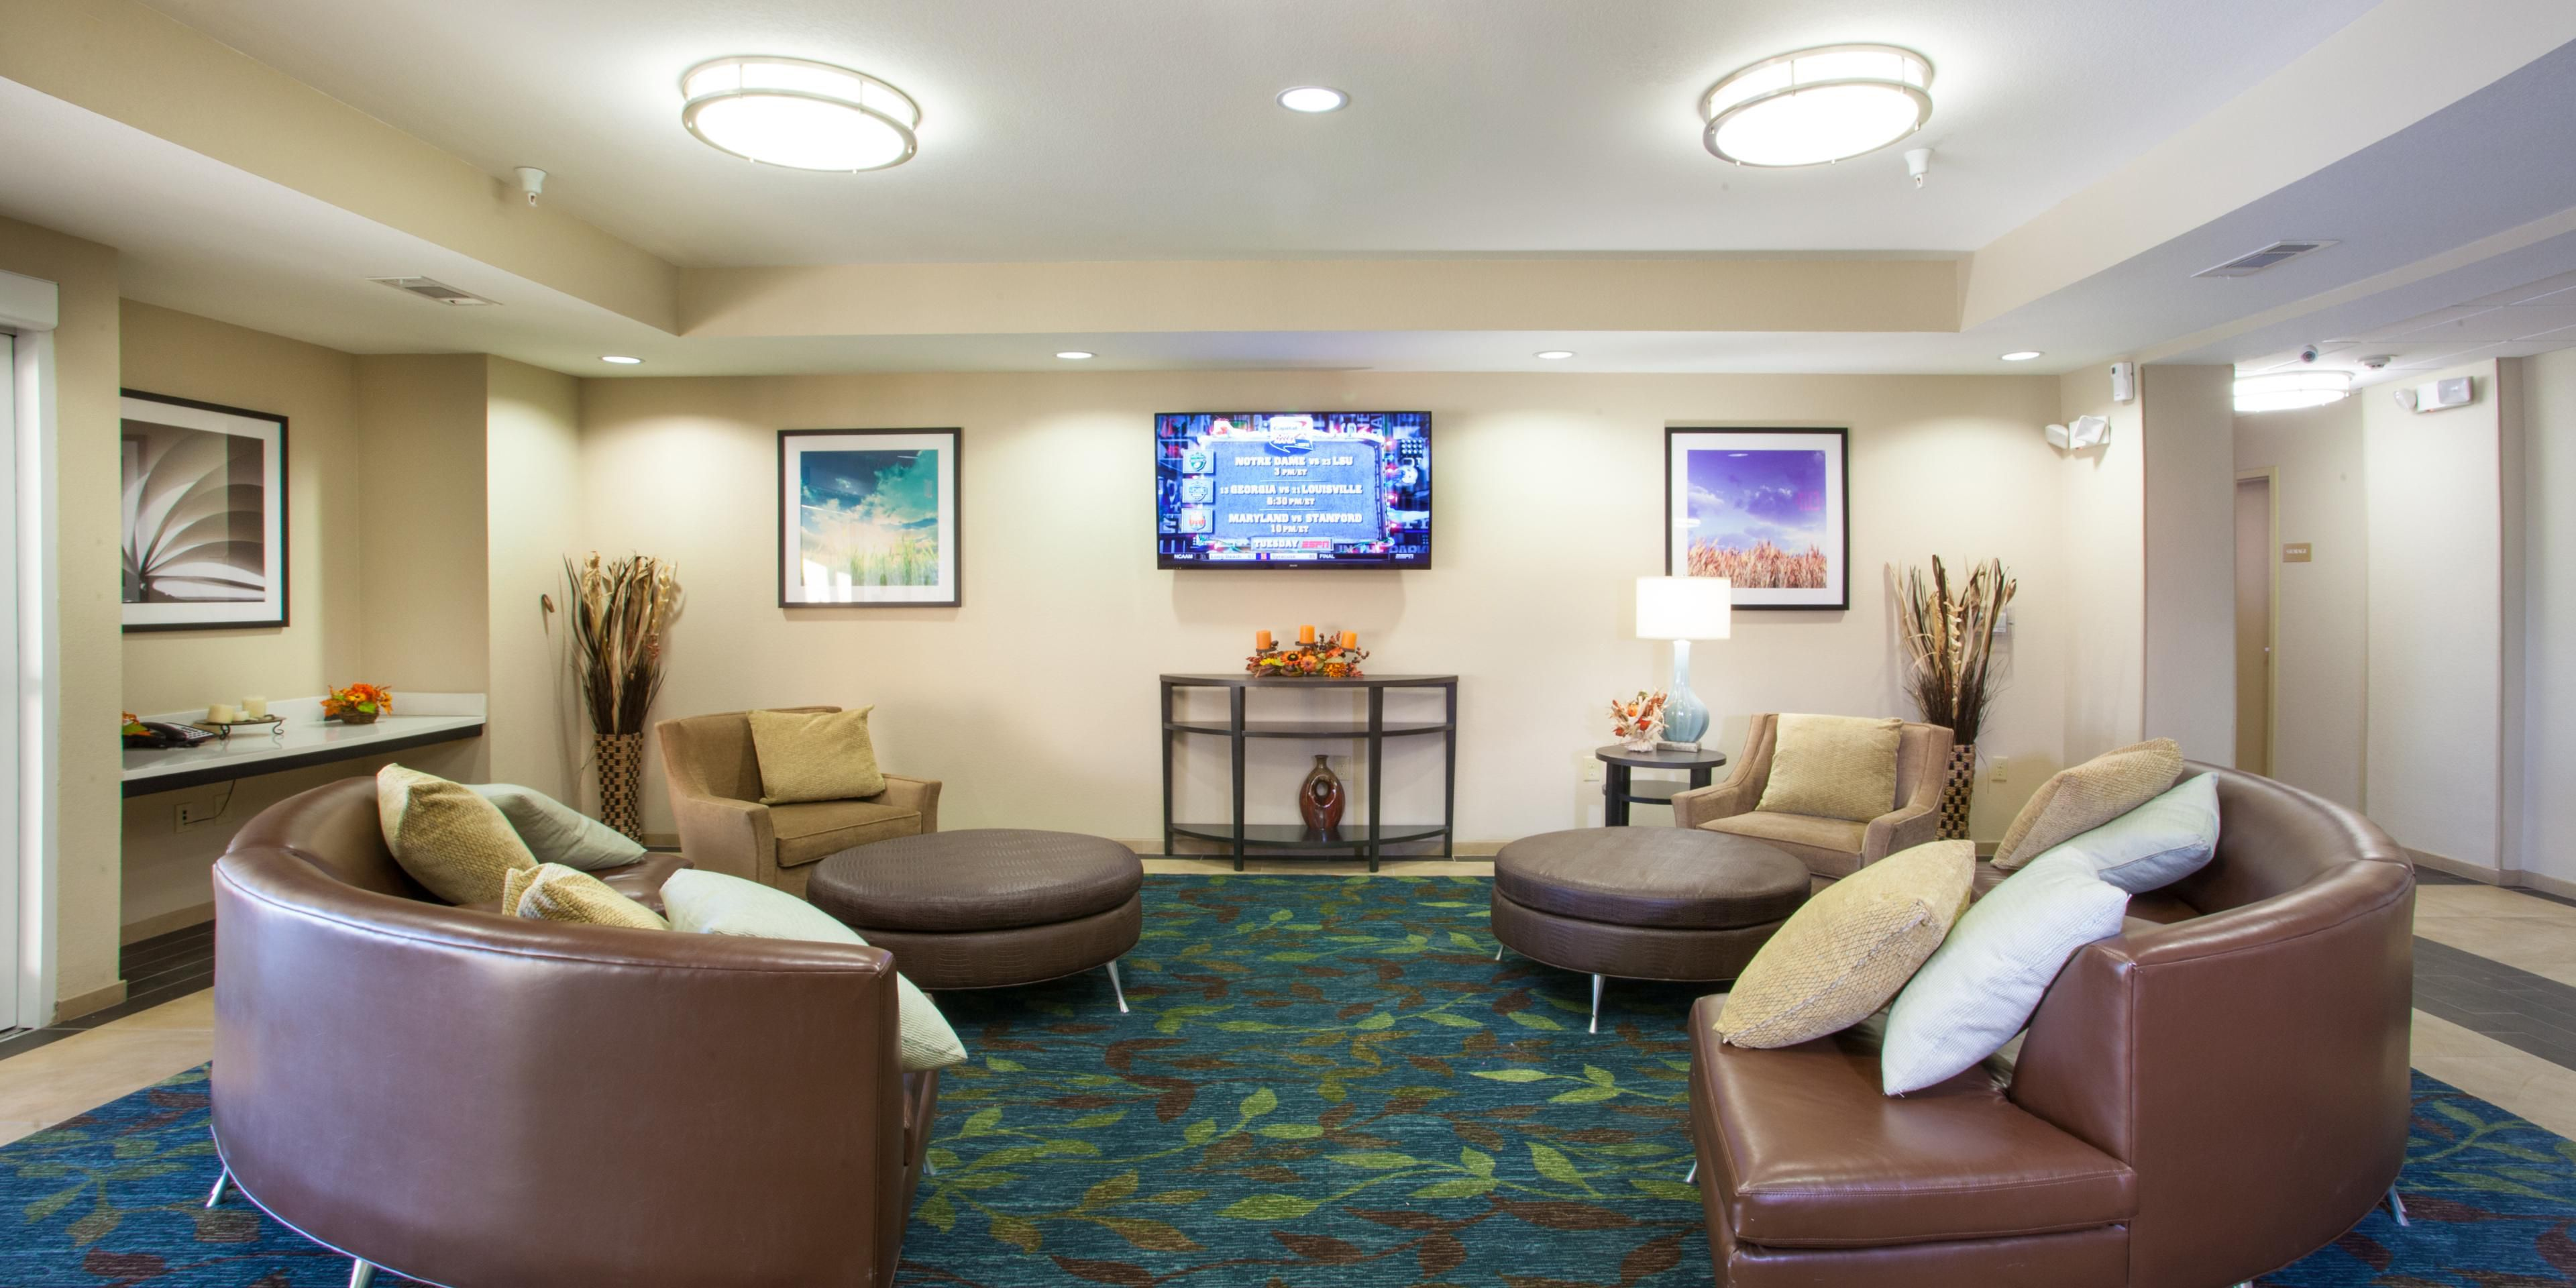 New Braunfels Hotels: Candlewood Suites New Braunfels   Extended Stay Hotel  In New Braunfels, Texas